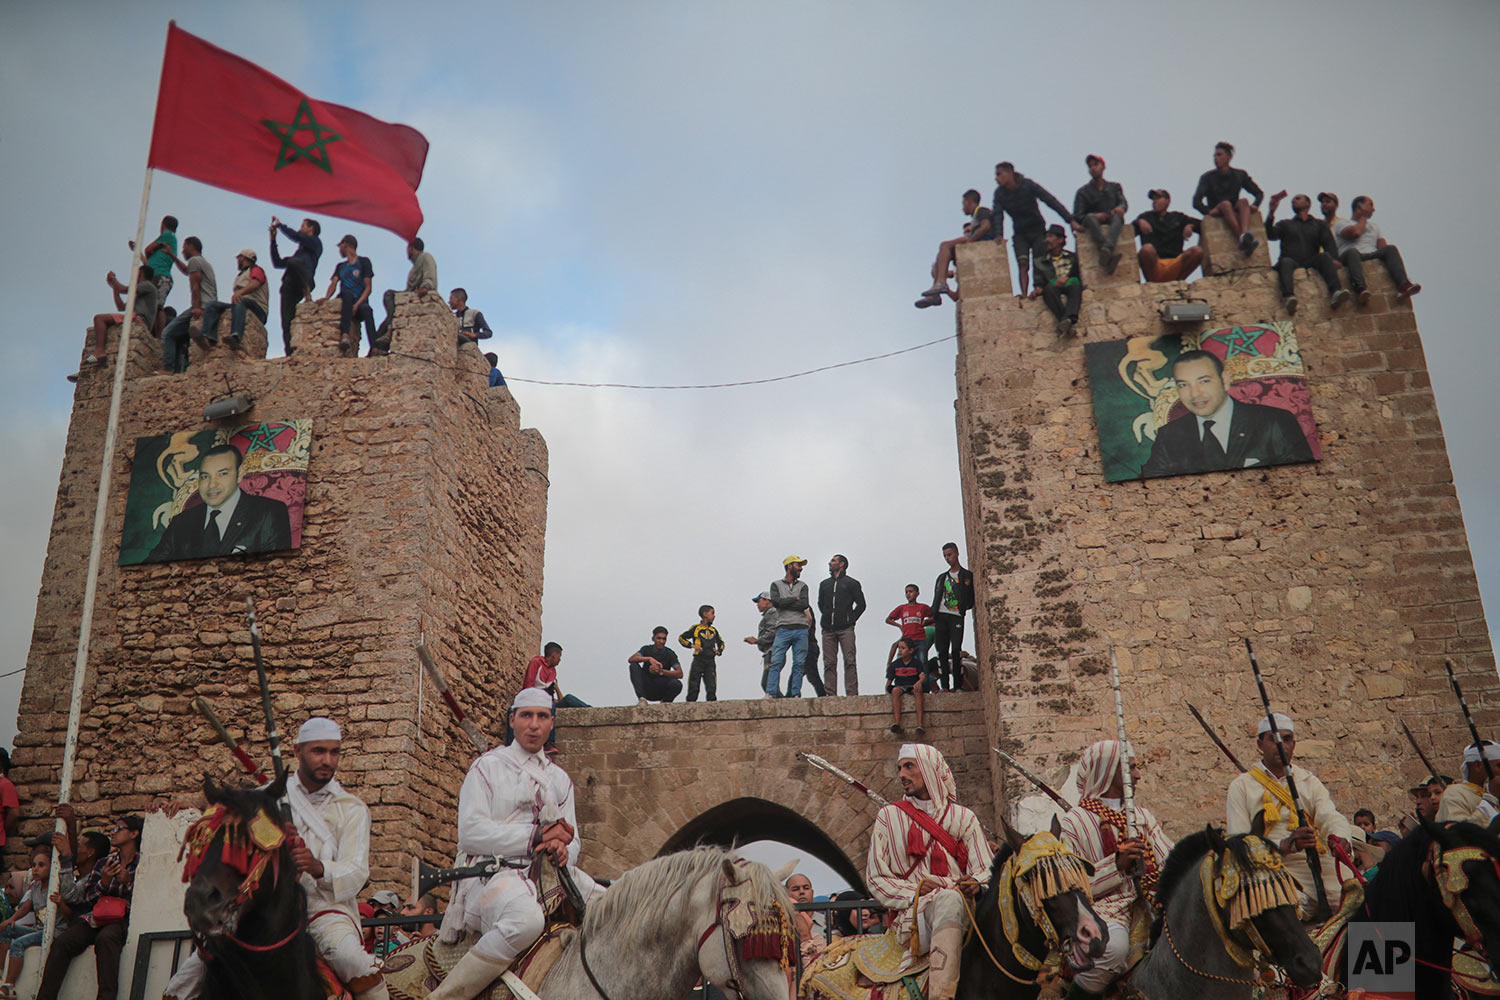 People watch atop an ancient wall as riders wait during Tabourida, a traditional horse riding show also known as Fantasia, in the coastal town of El Jadida, Morocco, July 25, 2019. (AP Photo/Mosa'ab Elshamy)